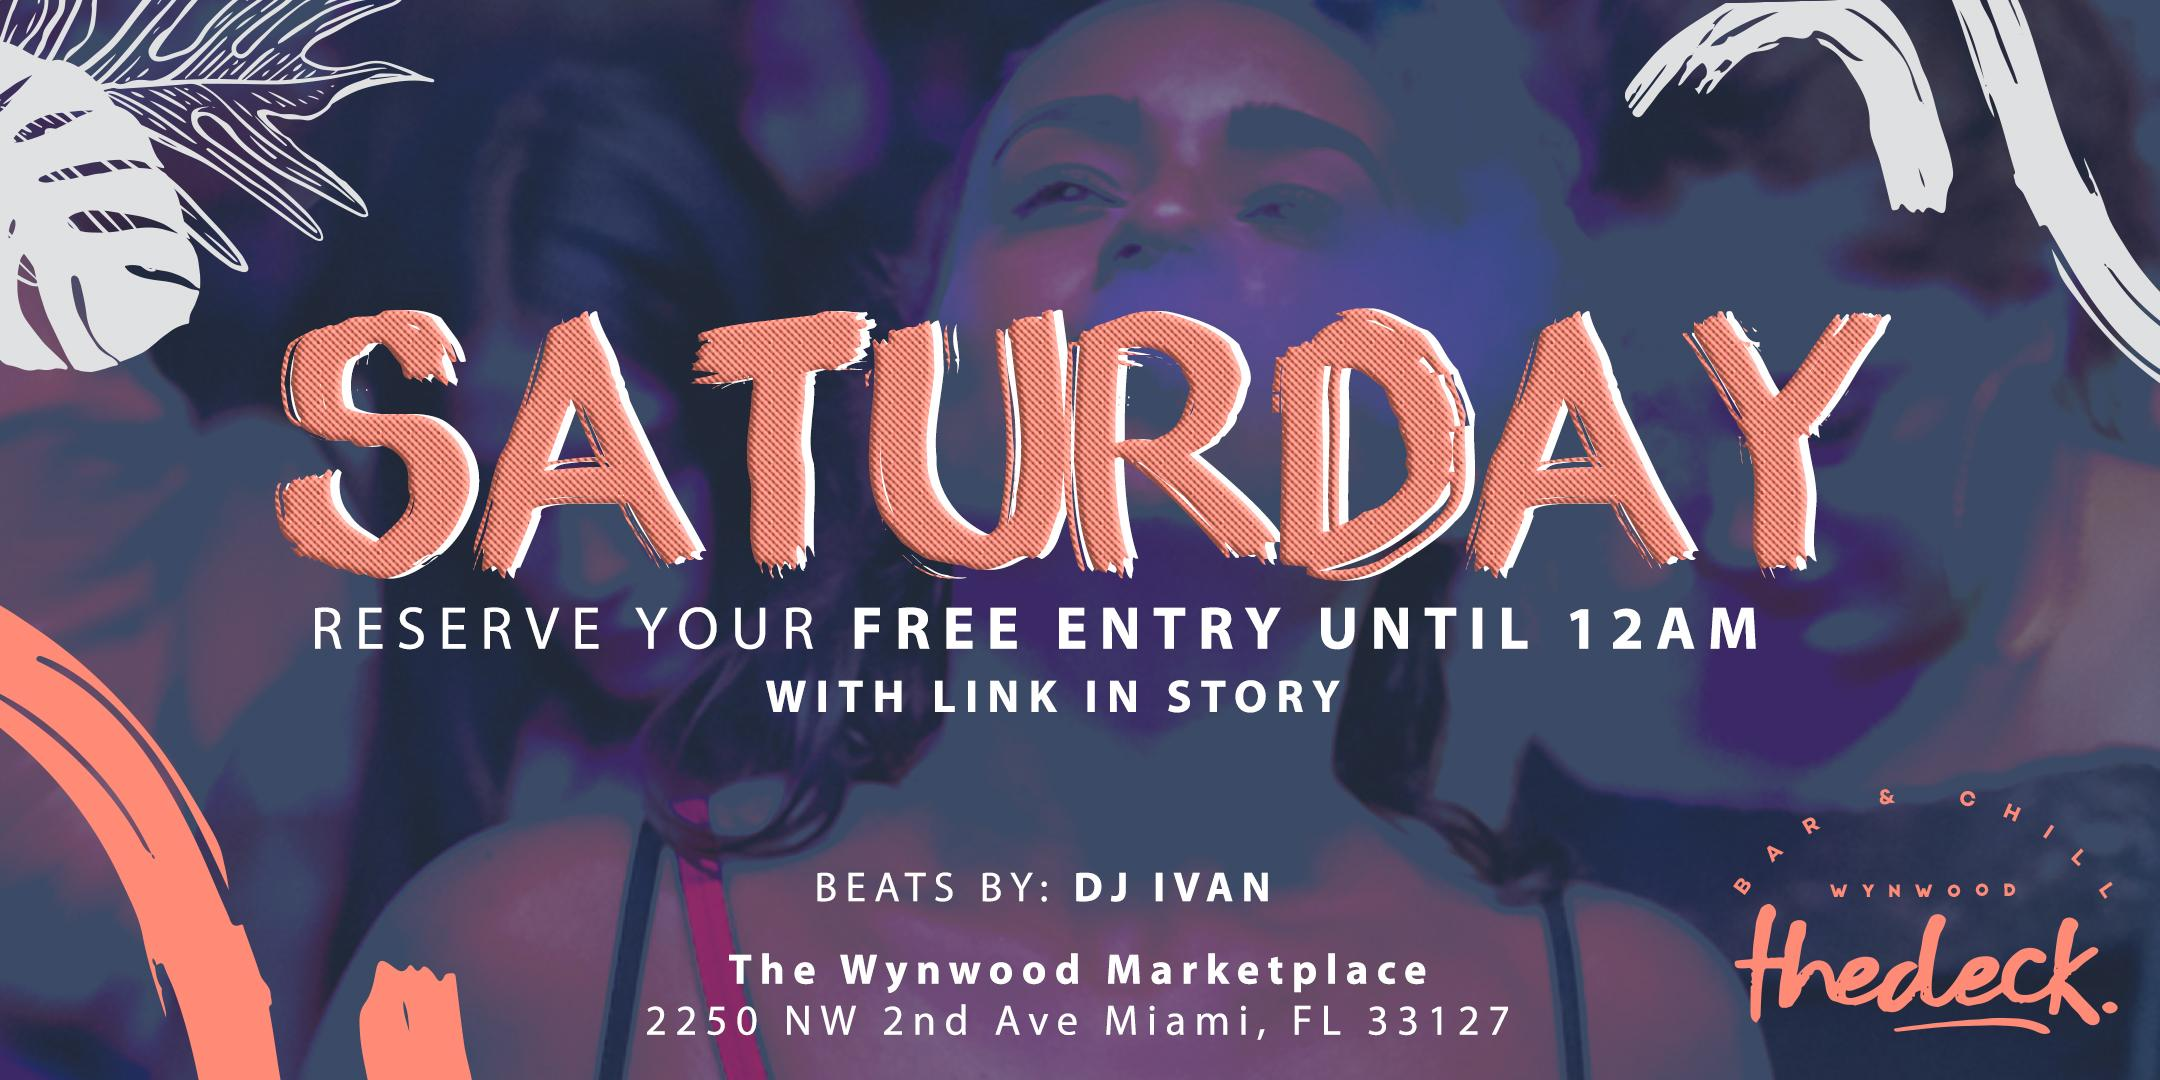 Saturdays at thedeck in The Wynwood Marketplace